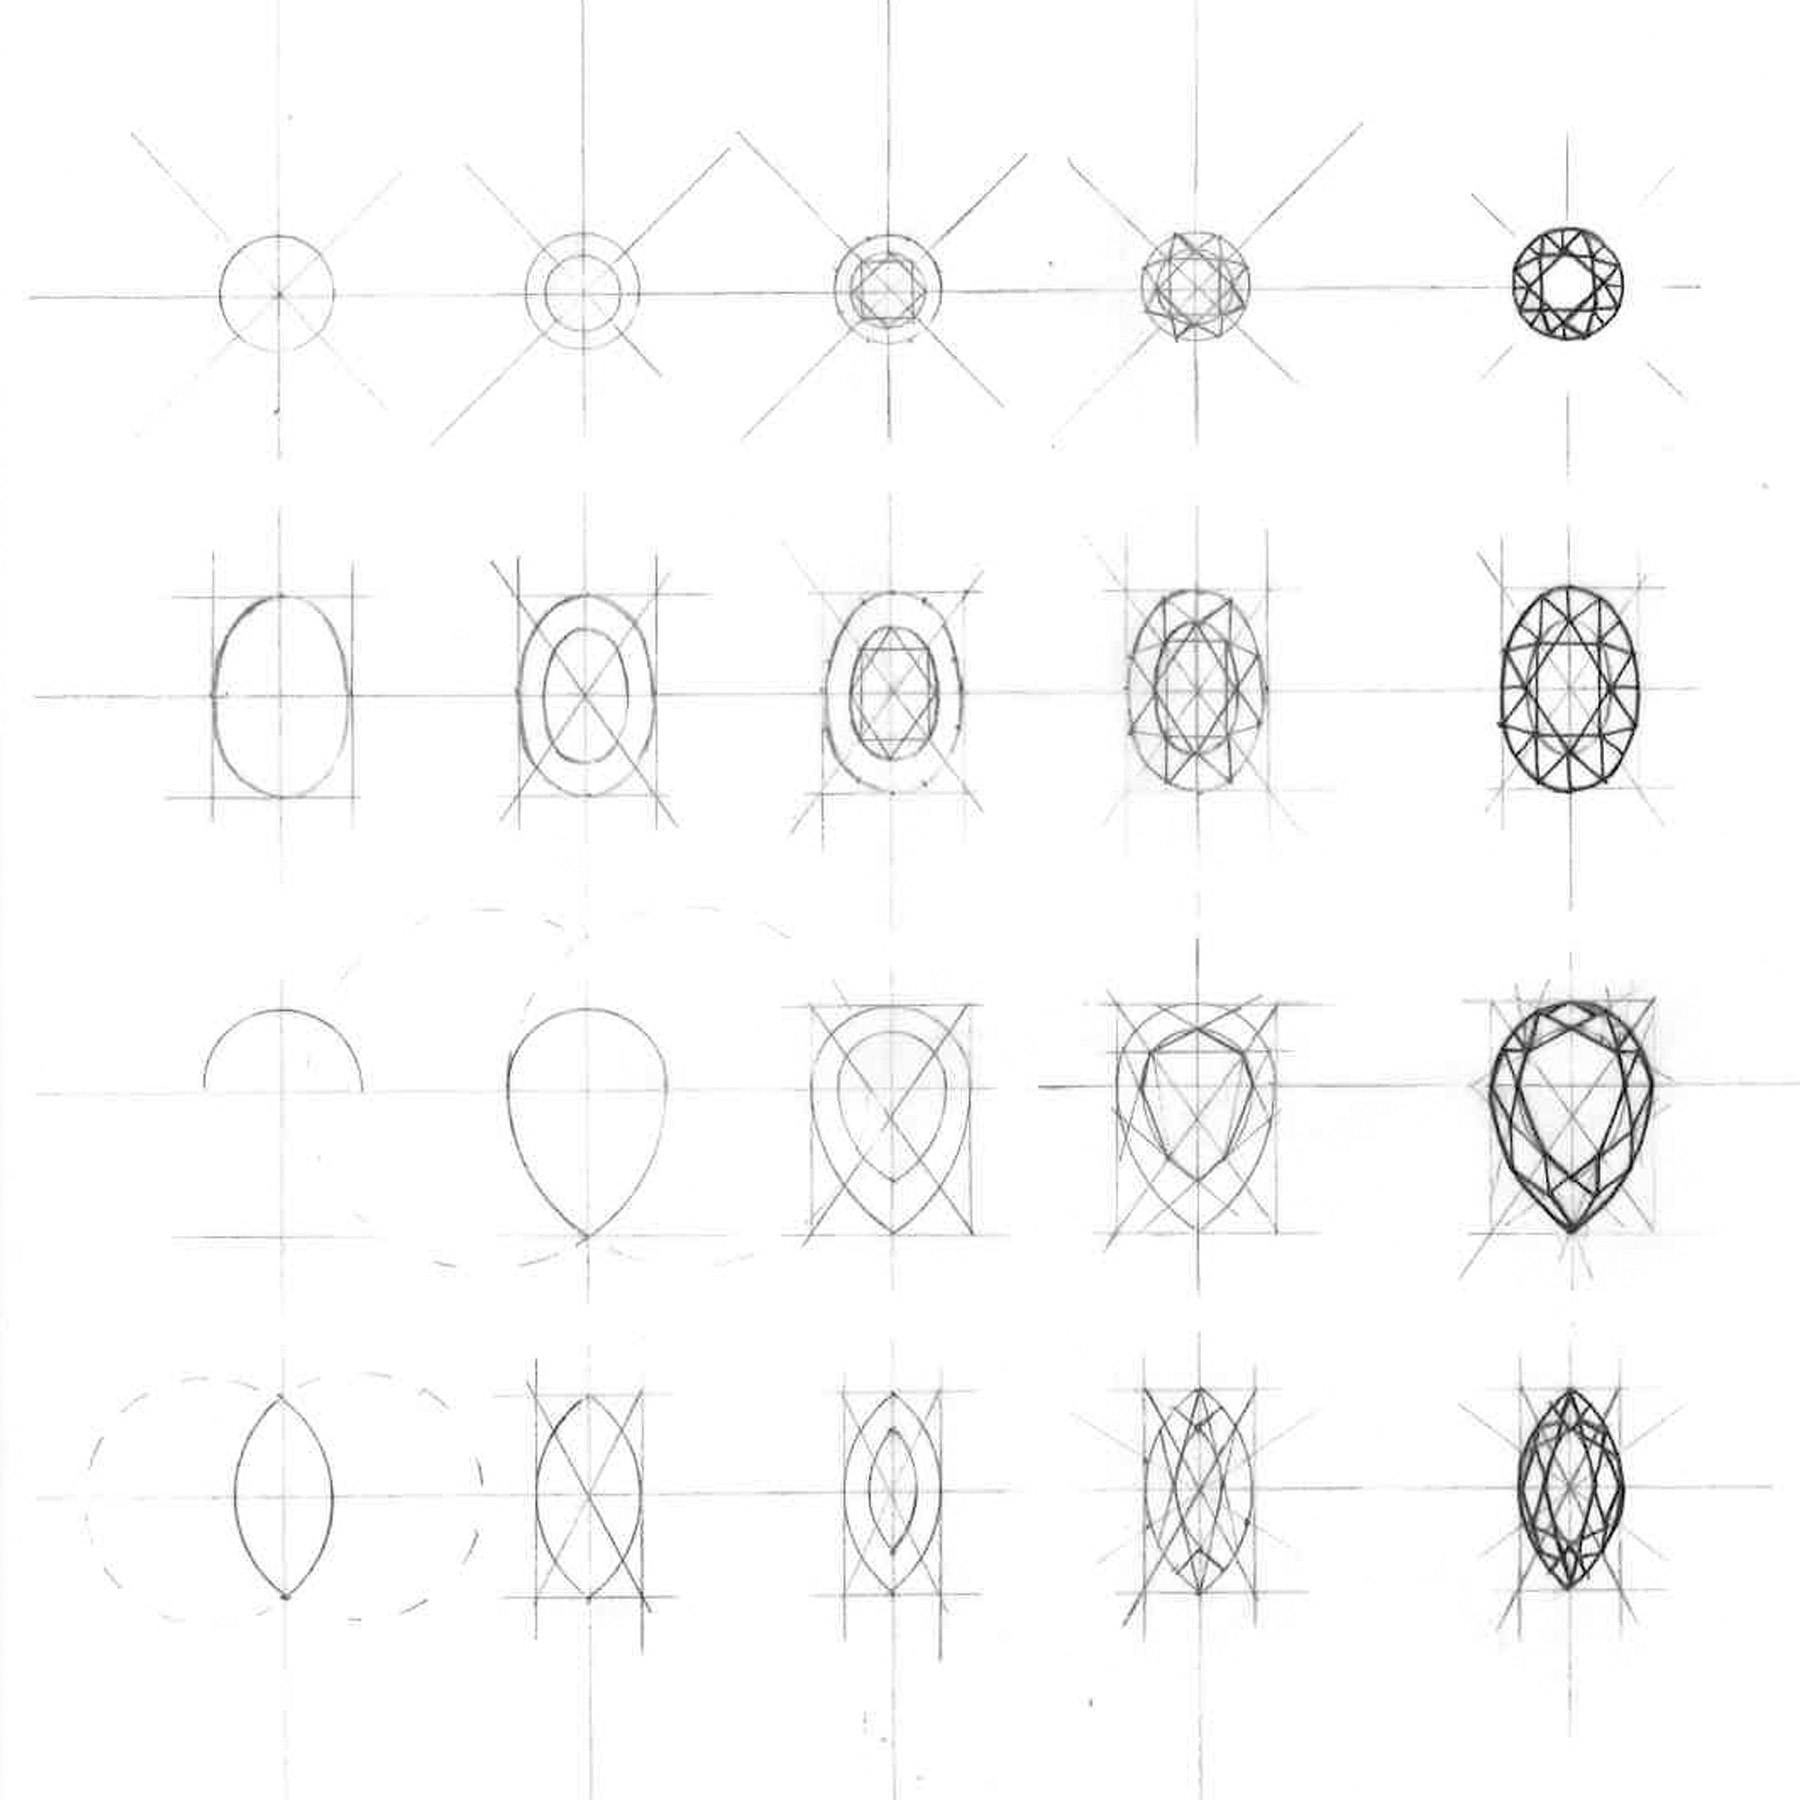 Technical-Drawing-By-Hand-Jewellery-3.jpg